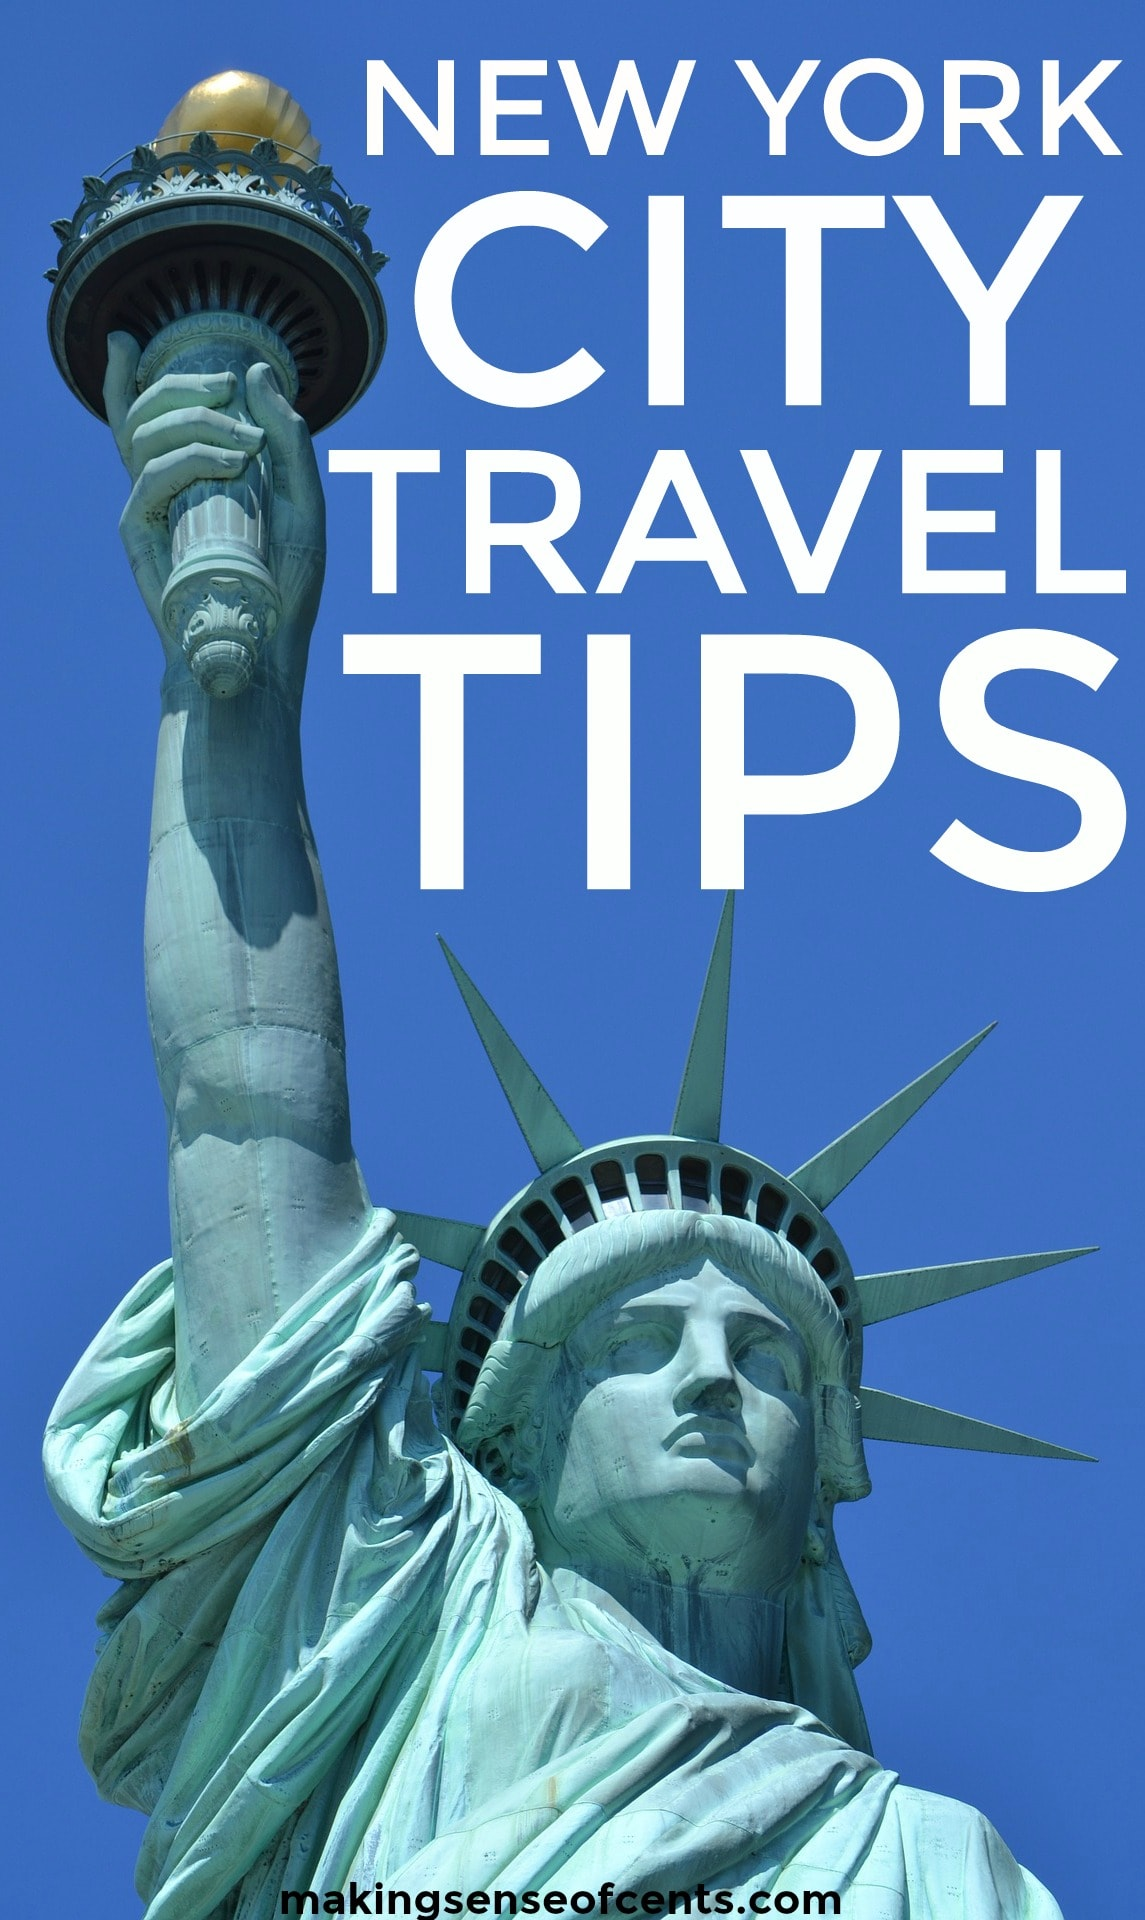 Check out this list of New York City travel tips. This is a great list!